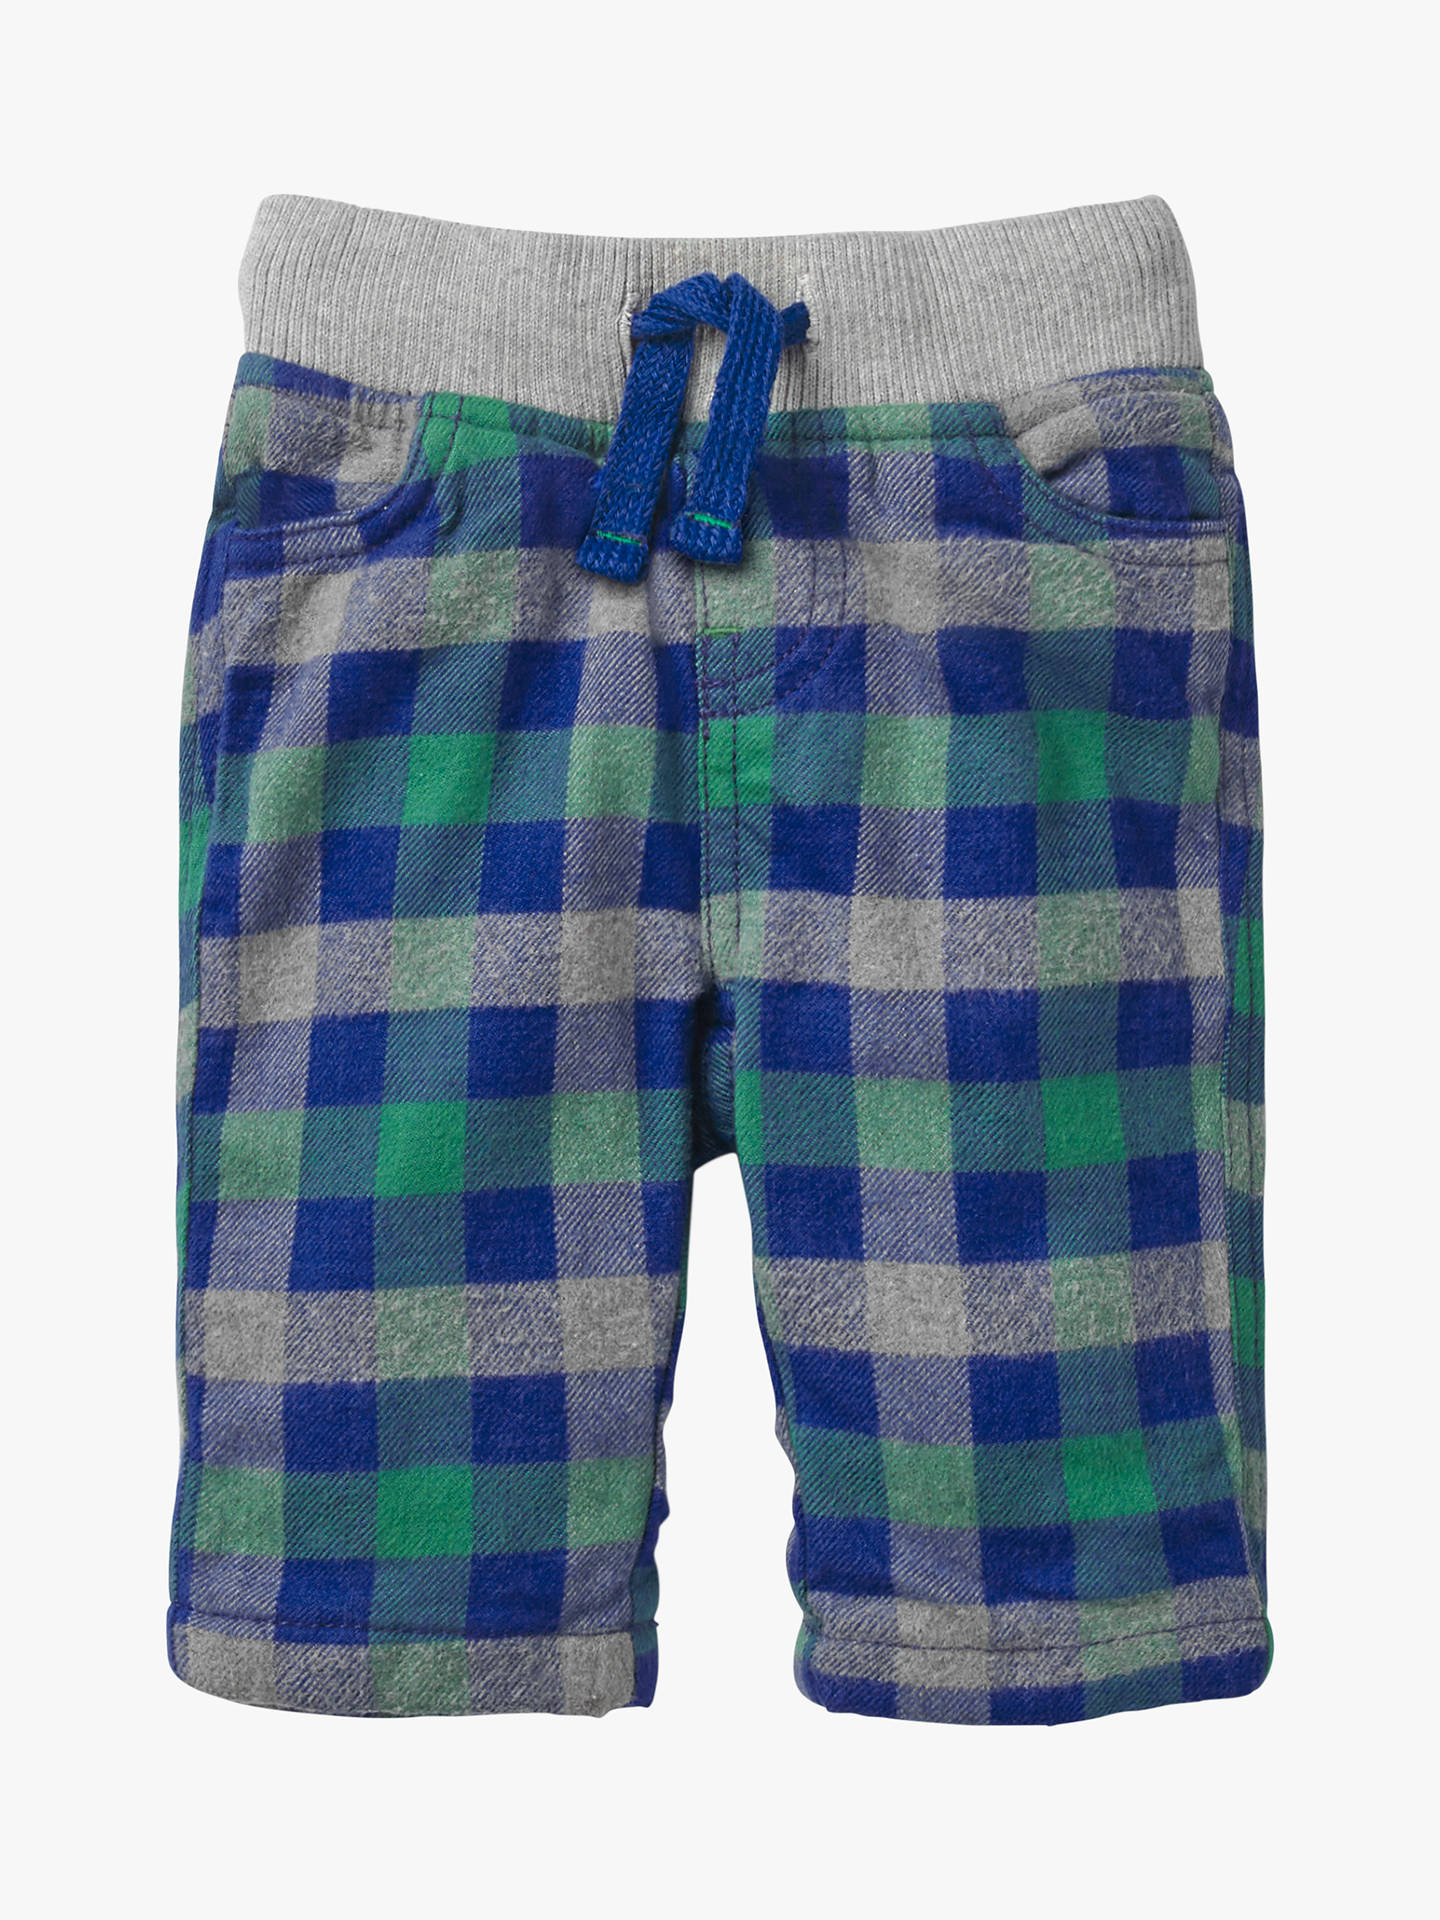 BuyMini Boden Baby Cosy Checked Trousers, Orion Blue/Green, 2-3 years Online at johnlewis.com